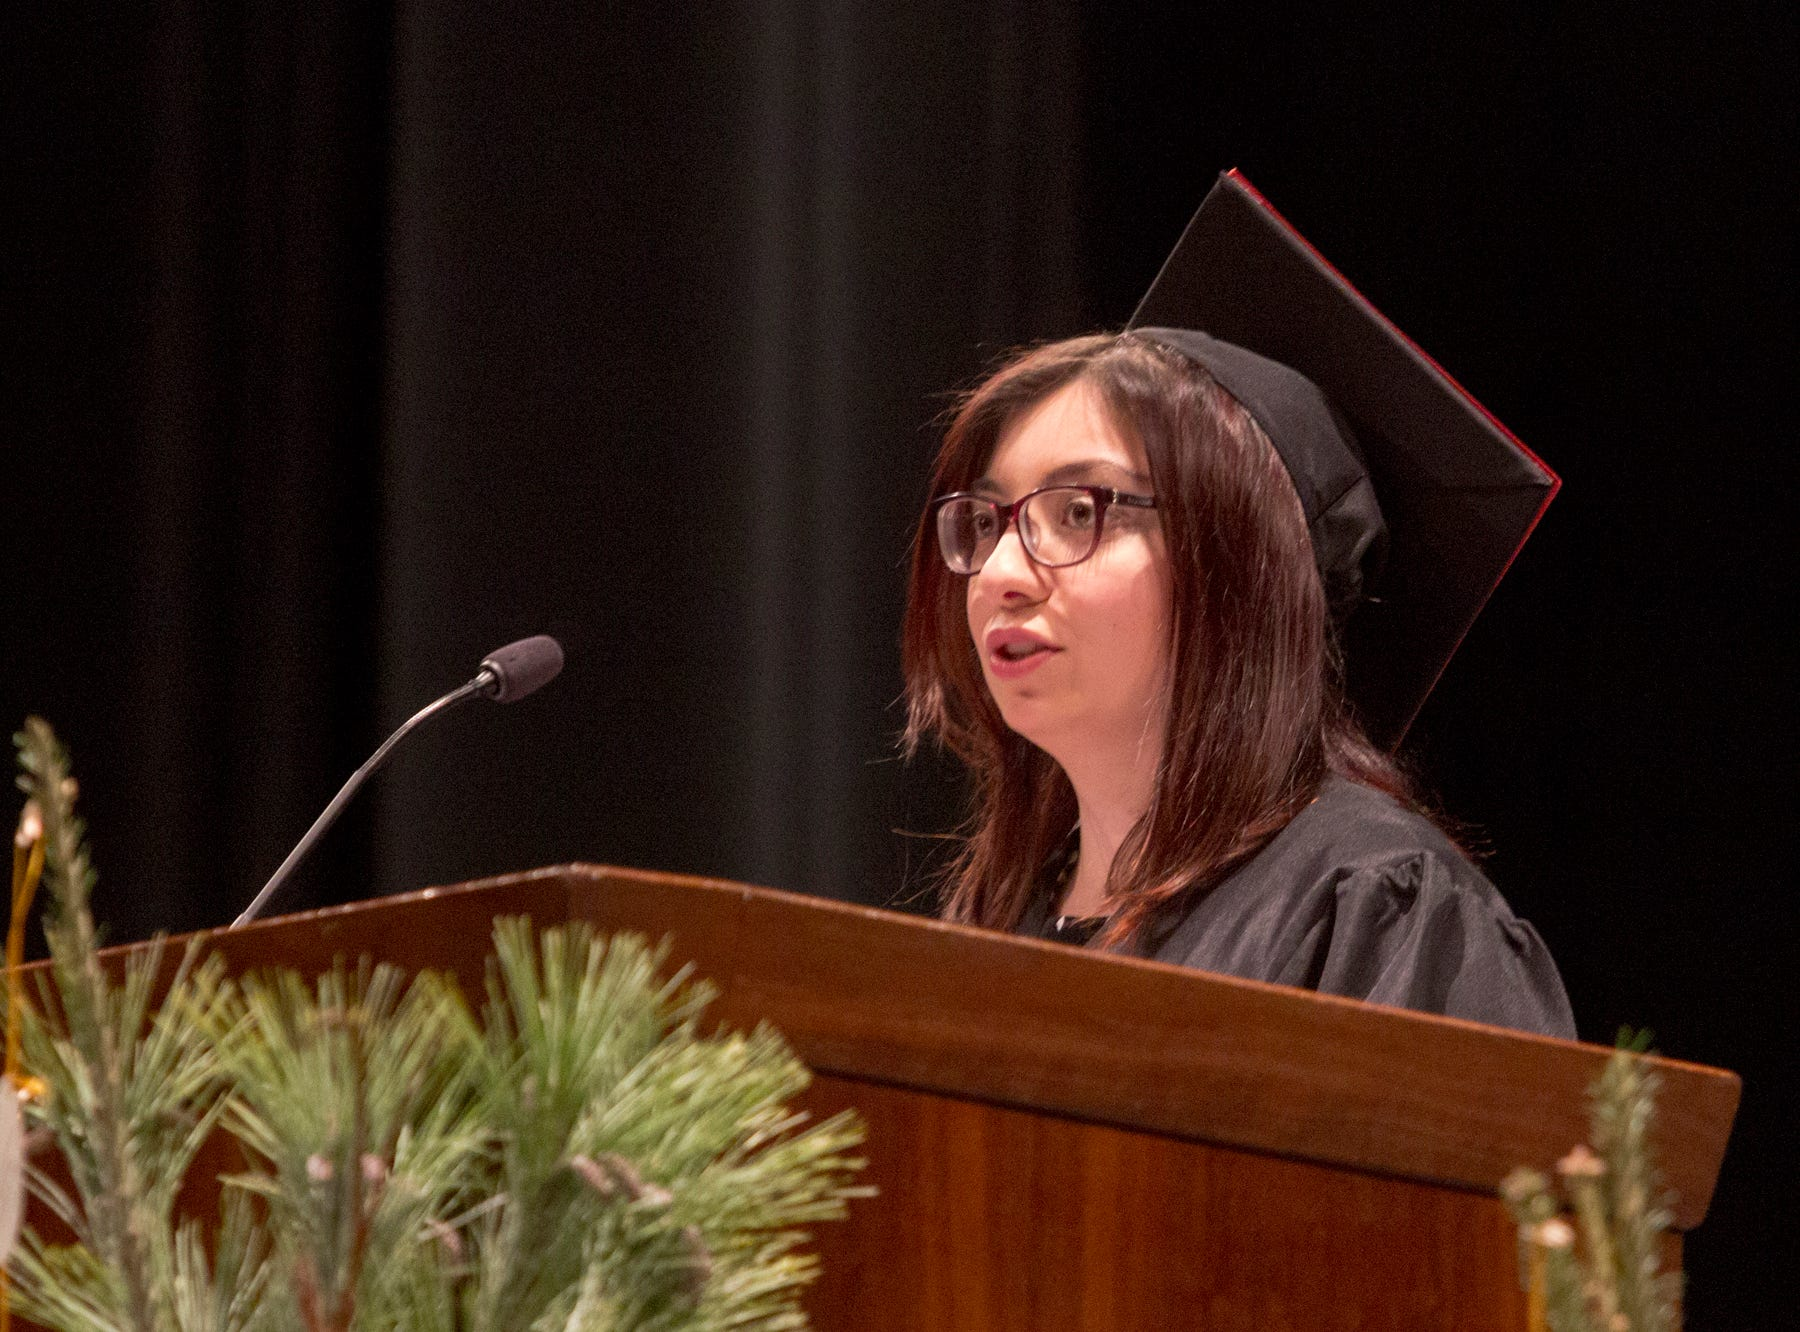 Selin Talay, an education major from Turkey, gives one of two student speeches. Mars Hill University conferred bachelor's degrees on 71 graduates on Dec. 14, 2018.